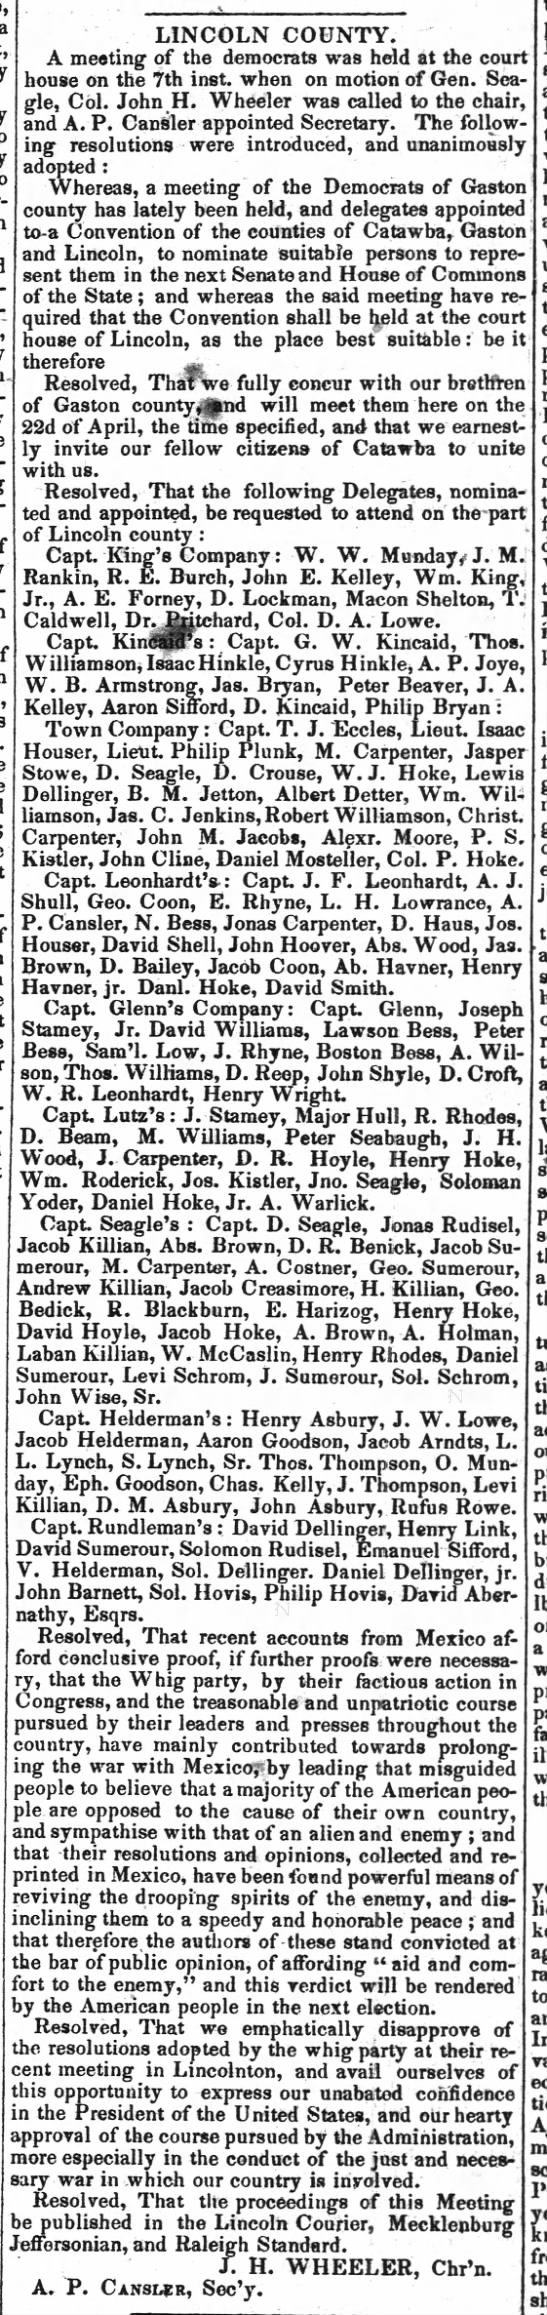 Goodson - The Weekly Standard (Raleigh, NC) 29 Mar 1848 - Reference Goodson - Lincoln County -